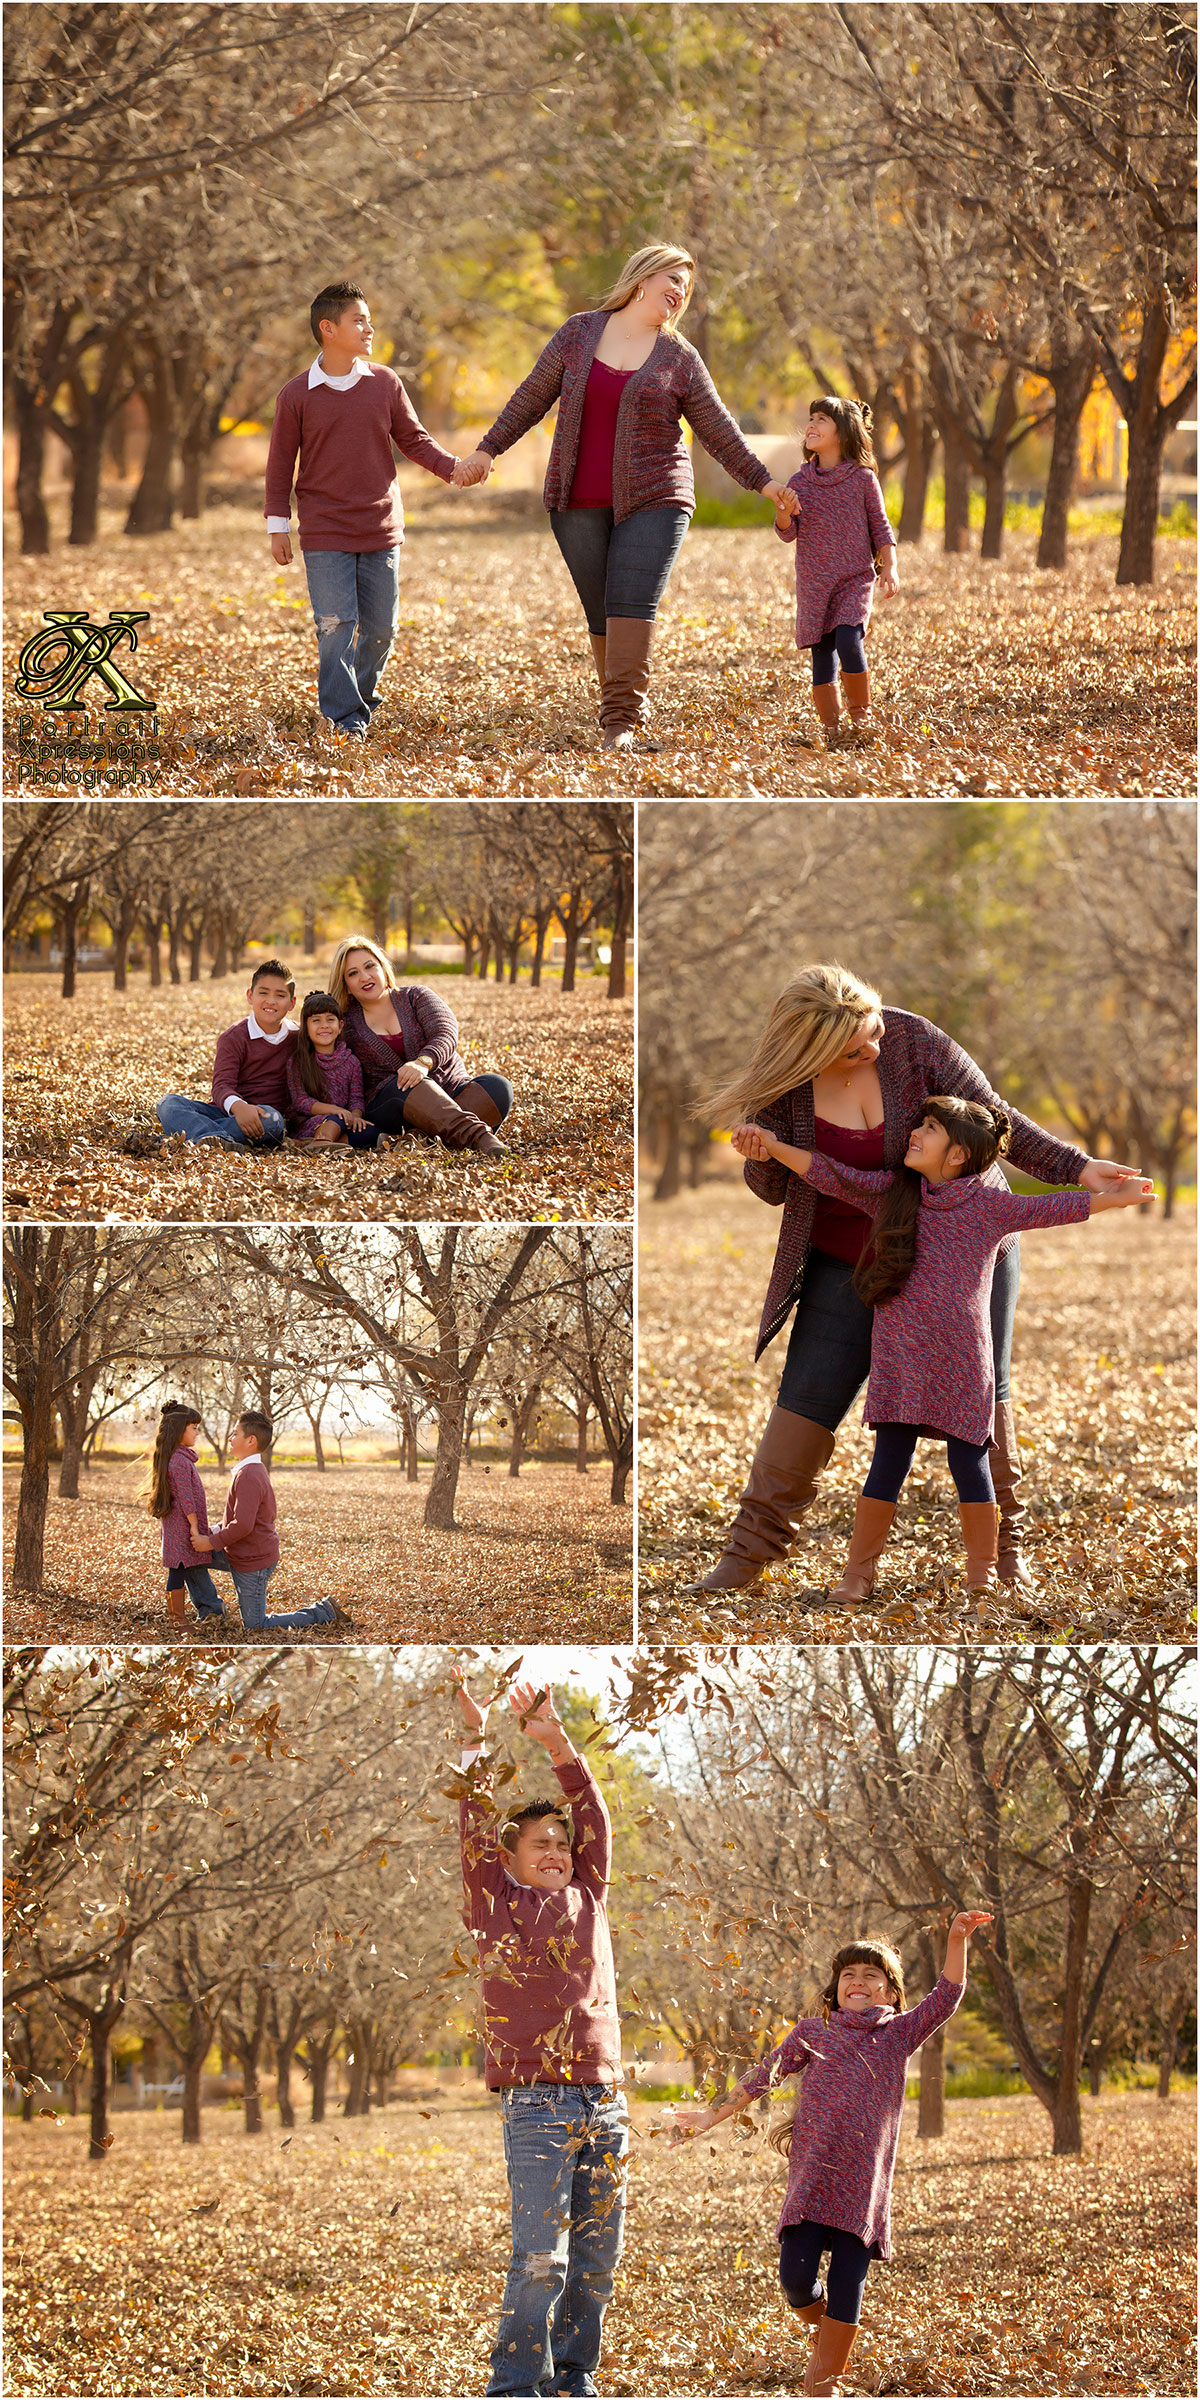 Jessica's Fall Portraits in El Paso